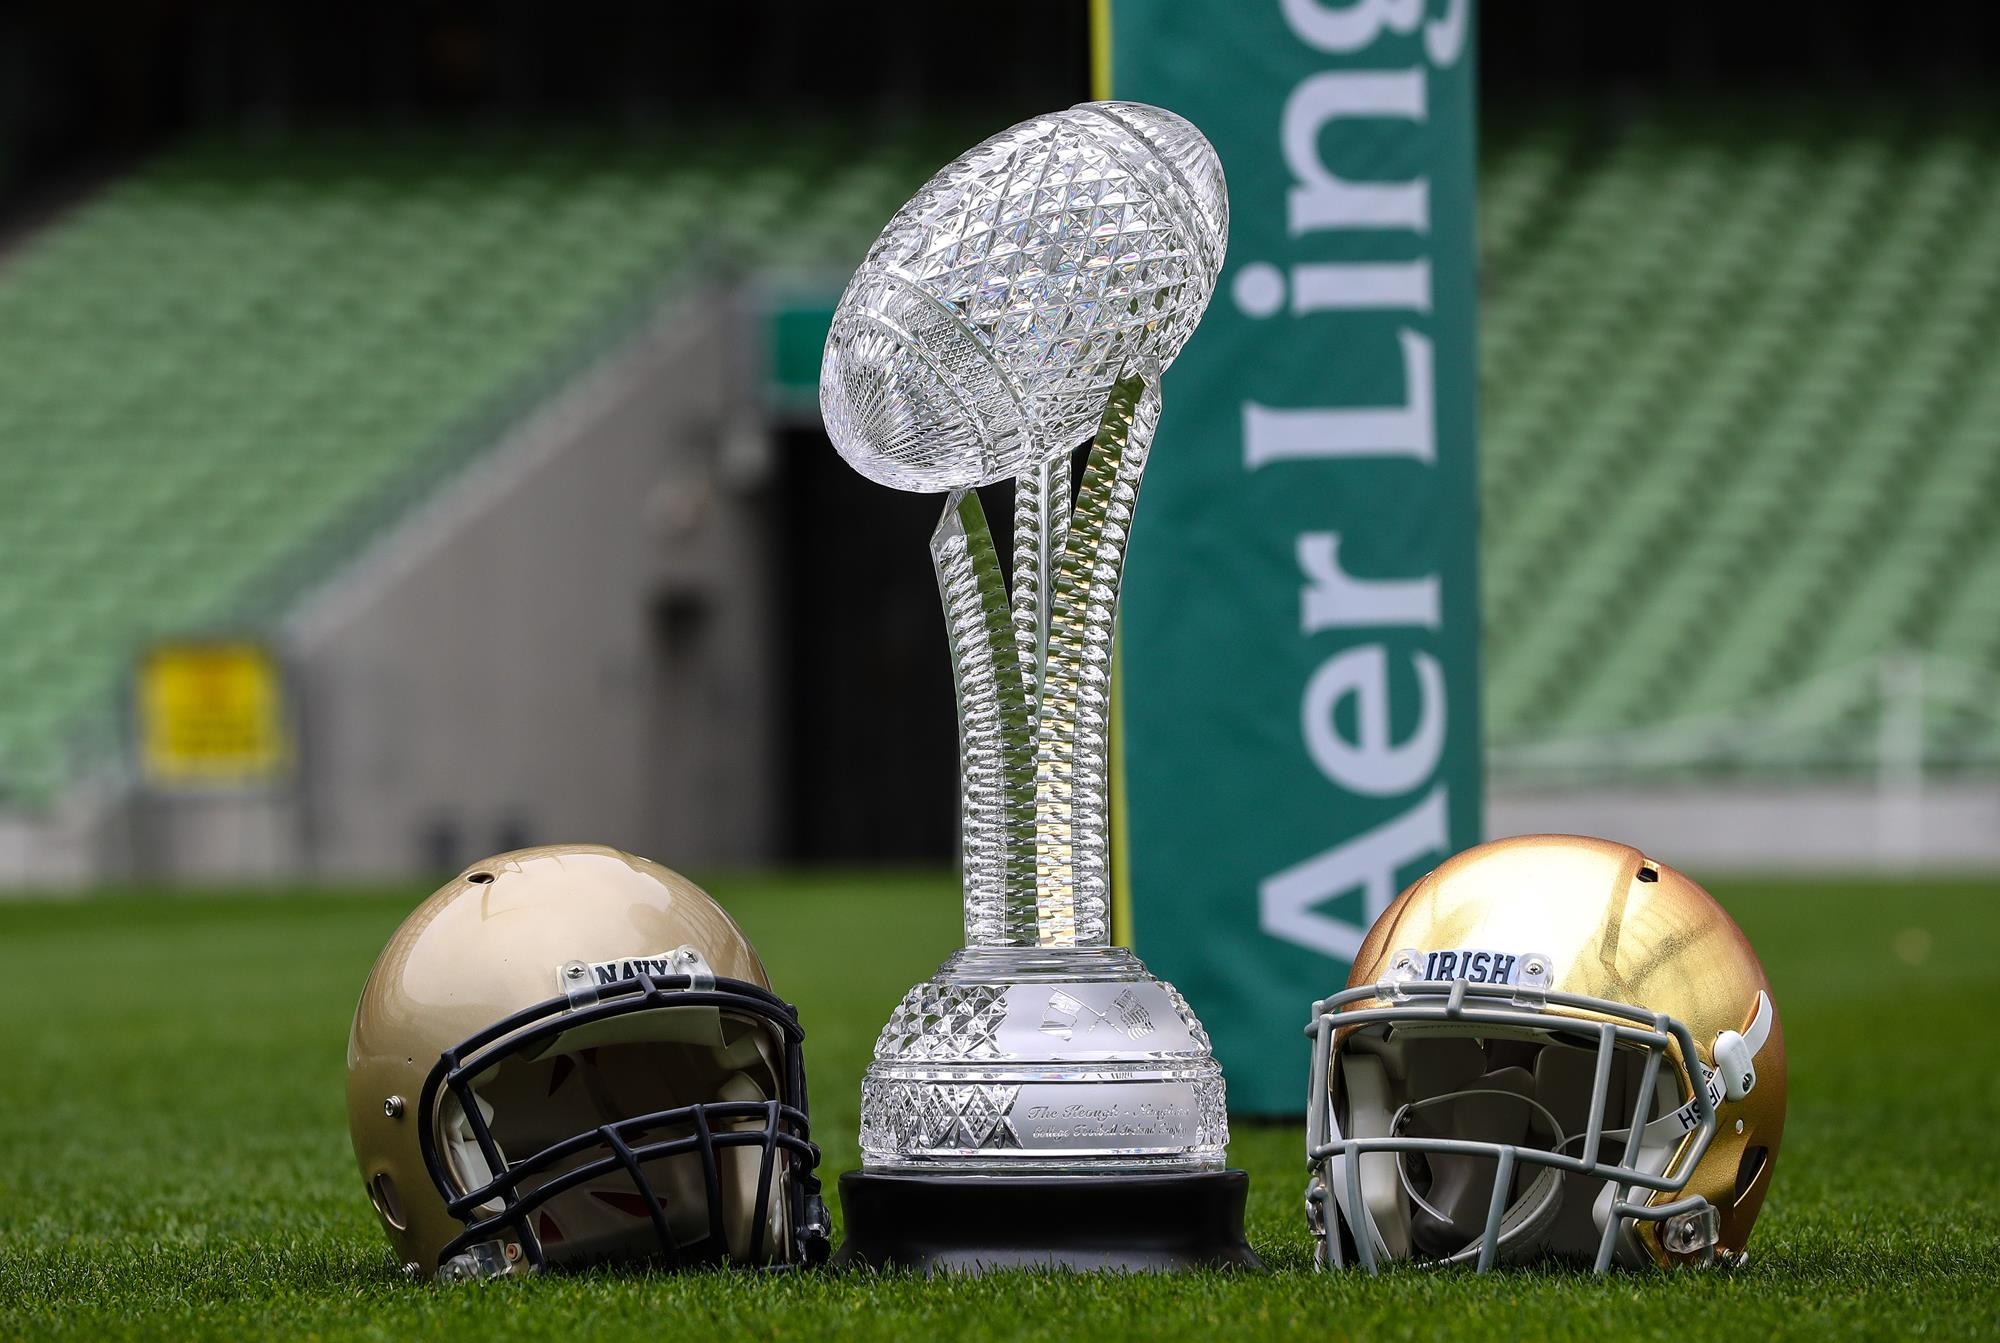 Nd Football Schedule 2020.2020 Navy Notre Dame Game To Be Played At Aviva Stadium In